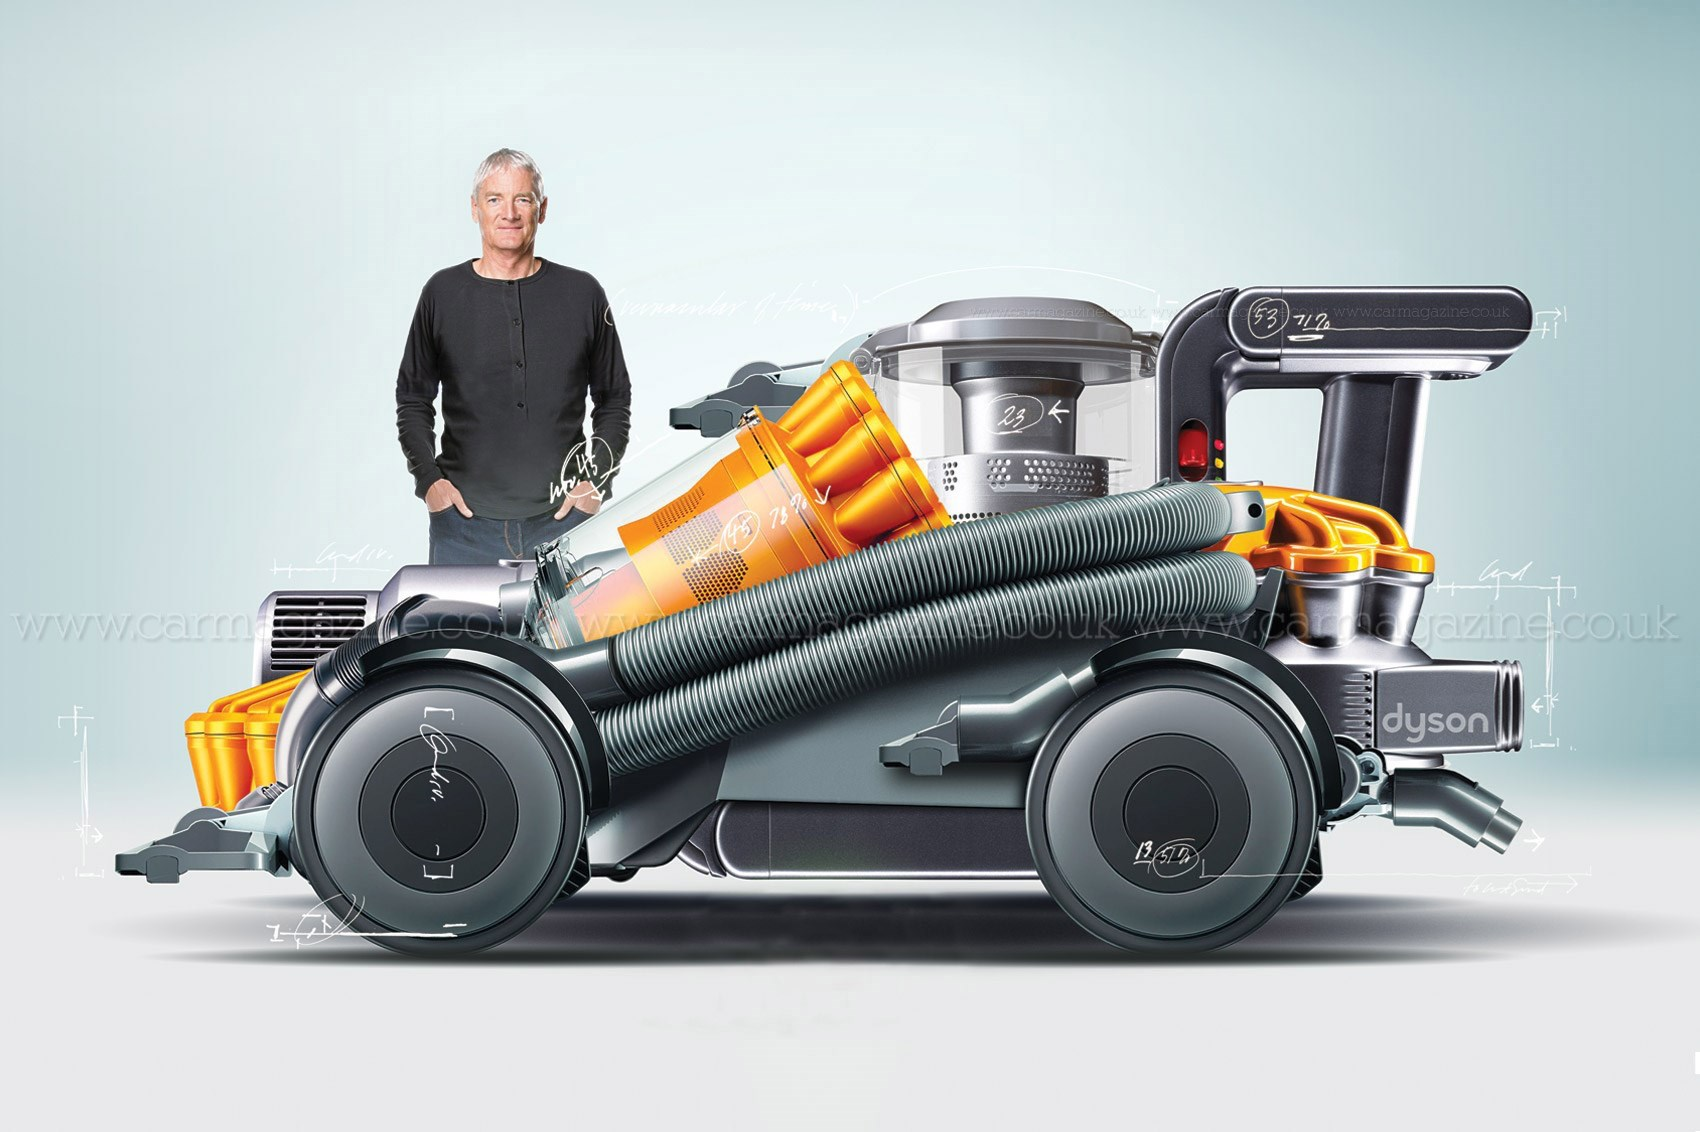 dyson se lance lui aussi dans le secteur du v hicule. Black Bedroom Furniture Sets. Home Design Ideas